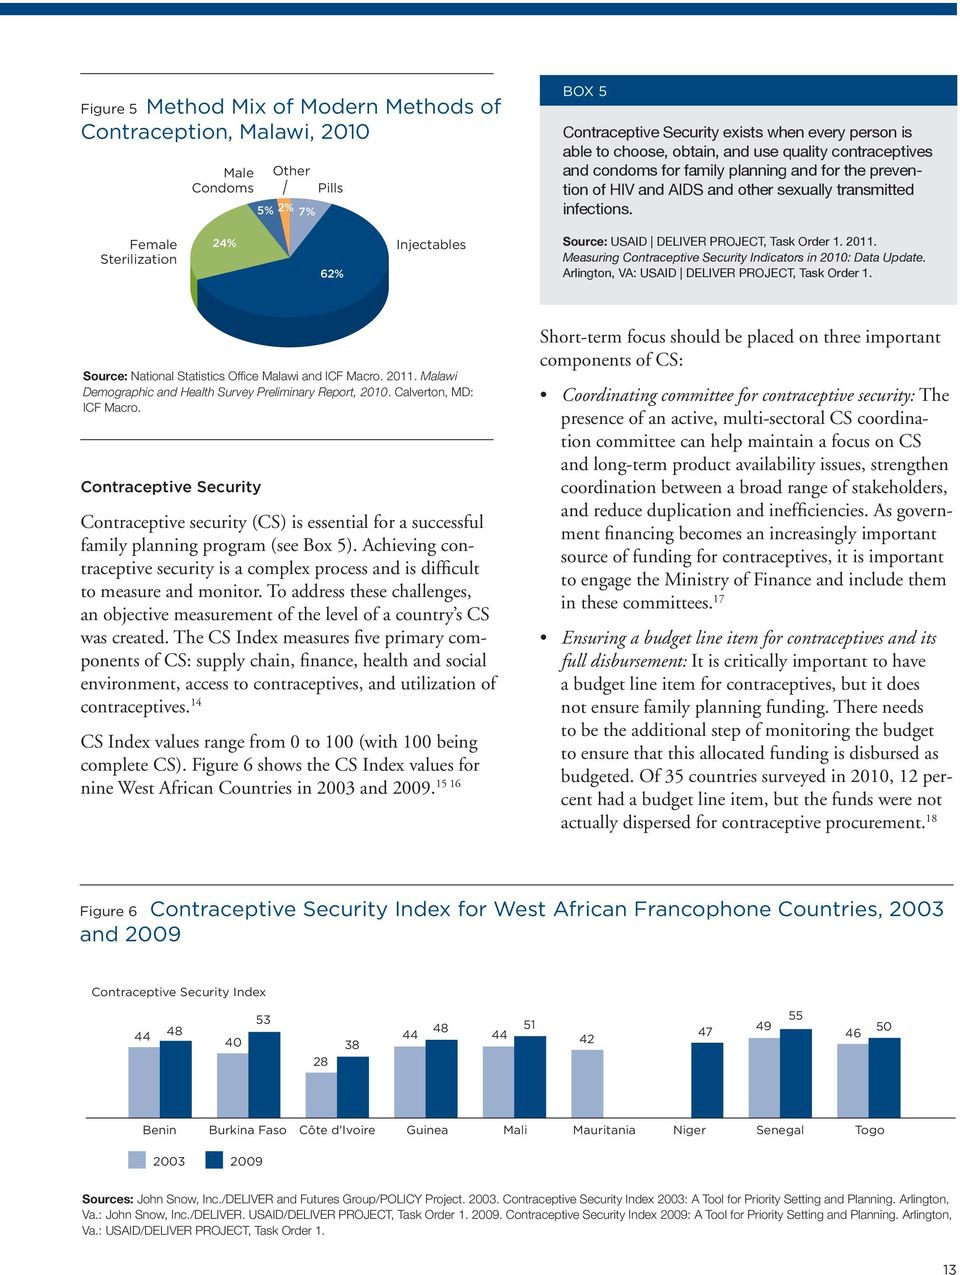 Female Sterilization 24% 62% Injectables Source: USAID DELIVER PROJECT, Task Order 1. 2011. Measuring Contraceptive Security Indicators in 2010: Data Update.